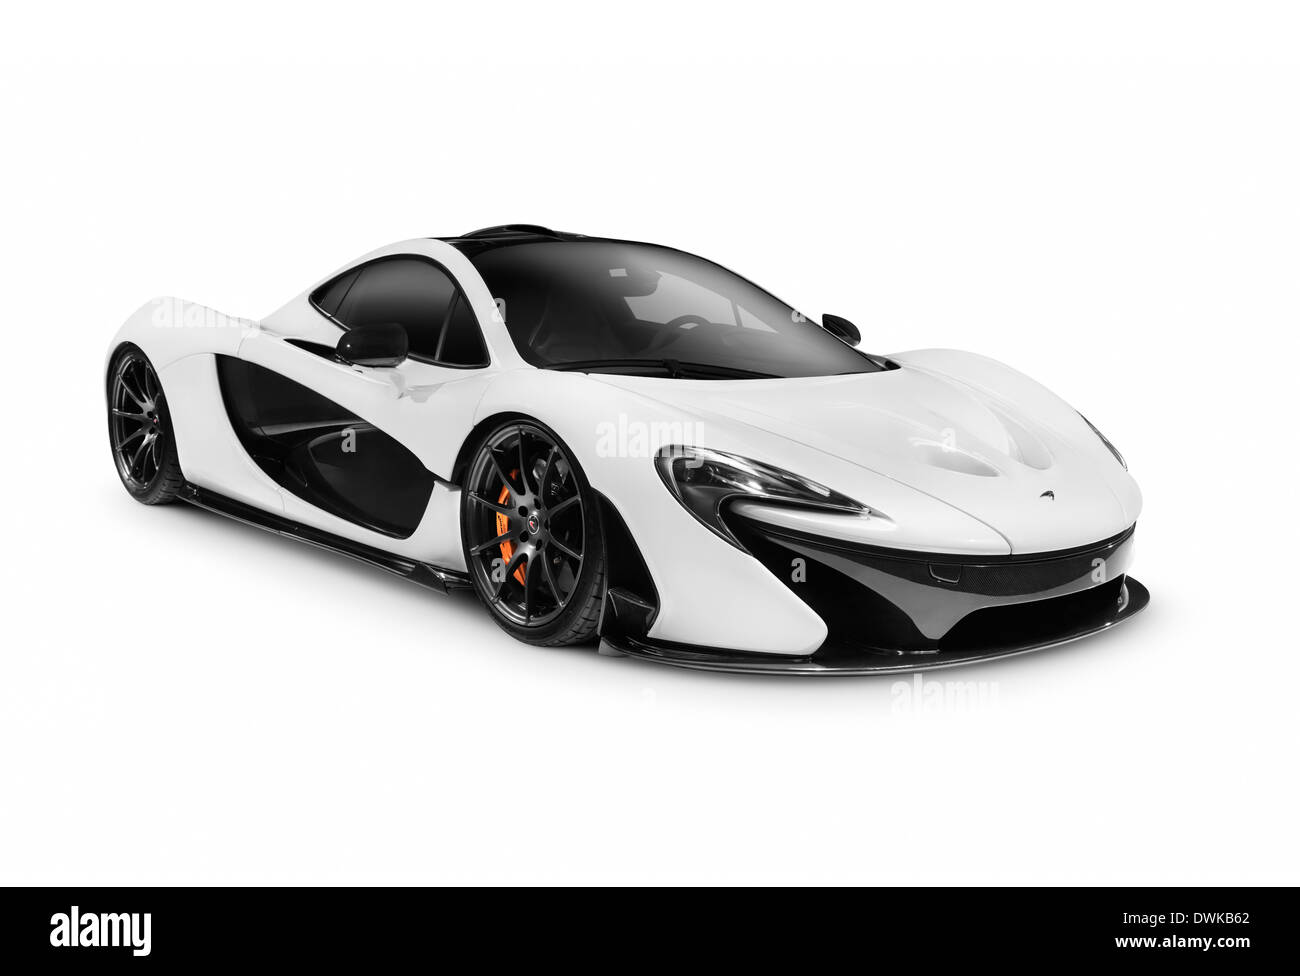 White 2014 McLaren P1 supercar hybride plug-in voiture sport isolé sur fond blanc Photo Stock